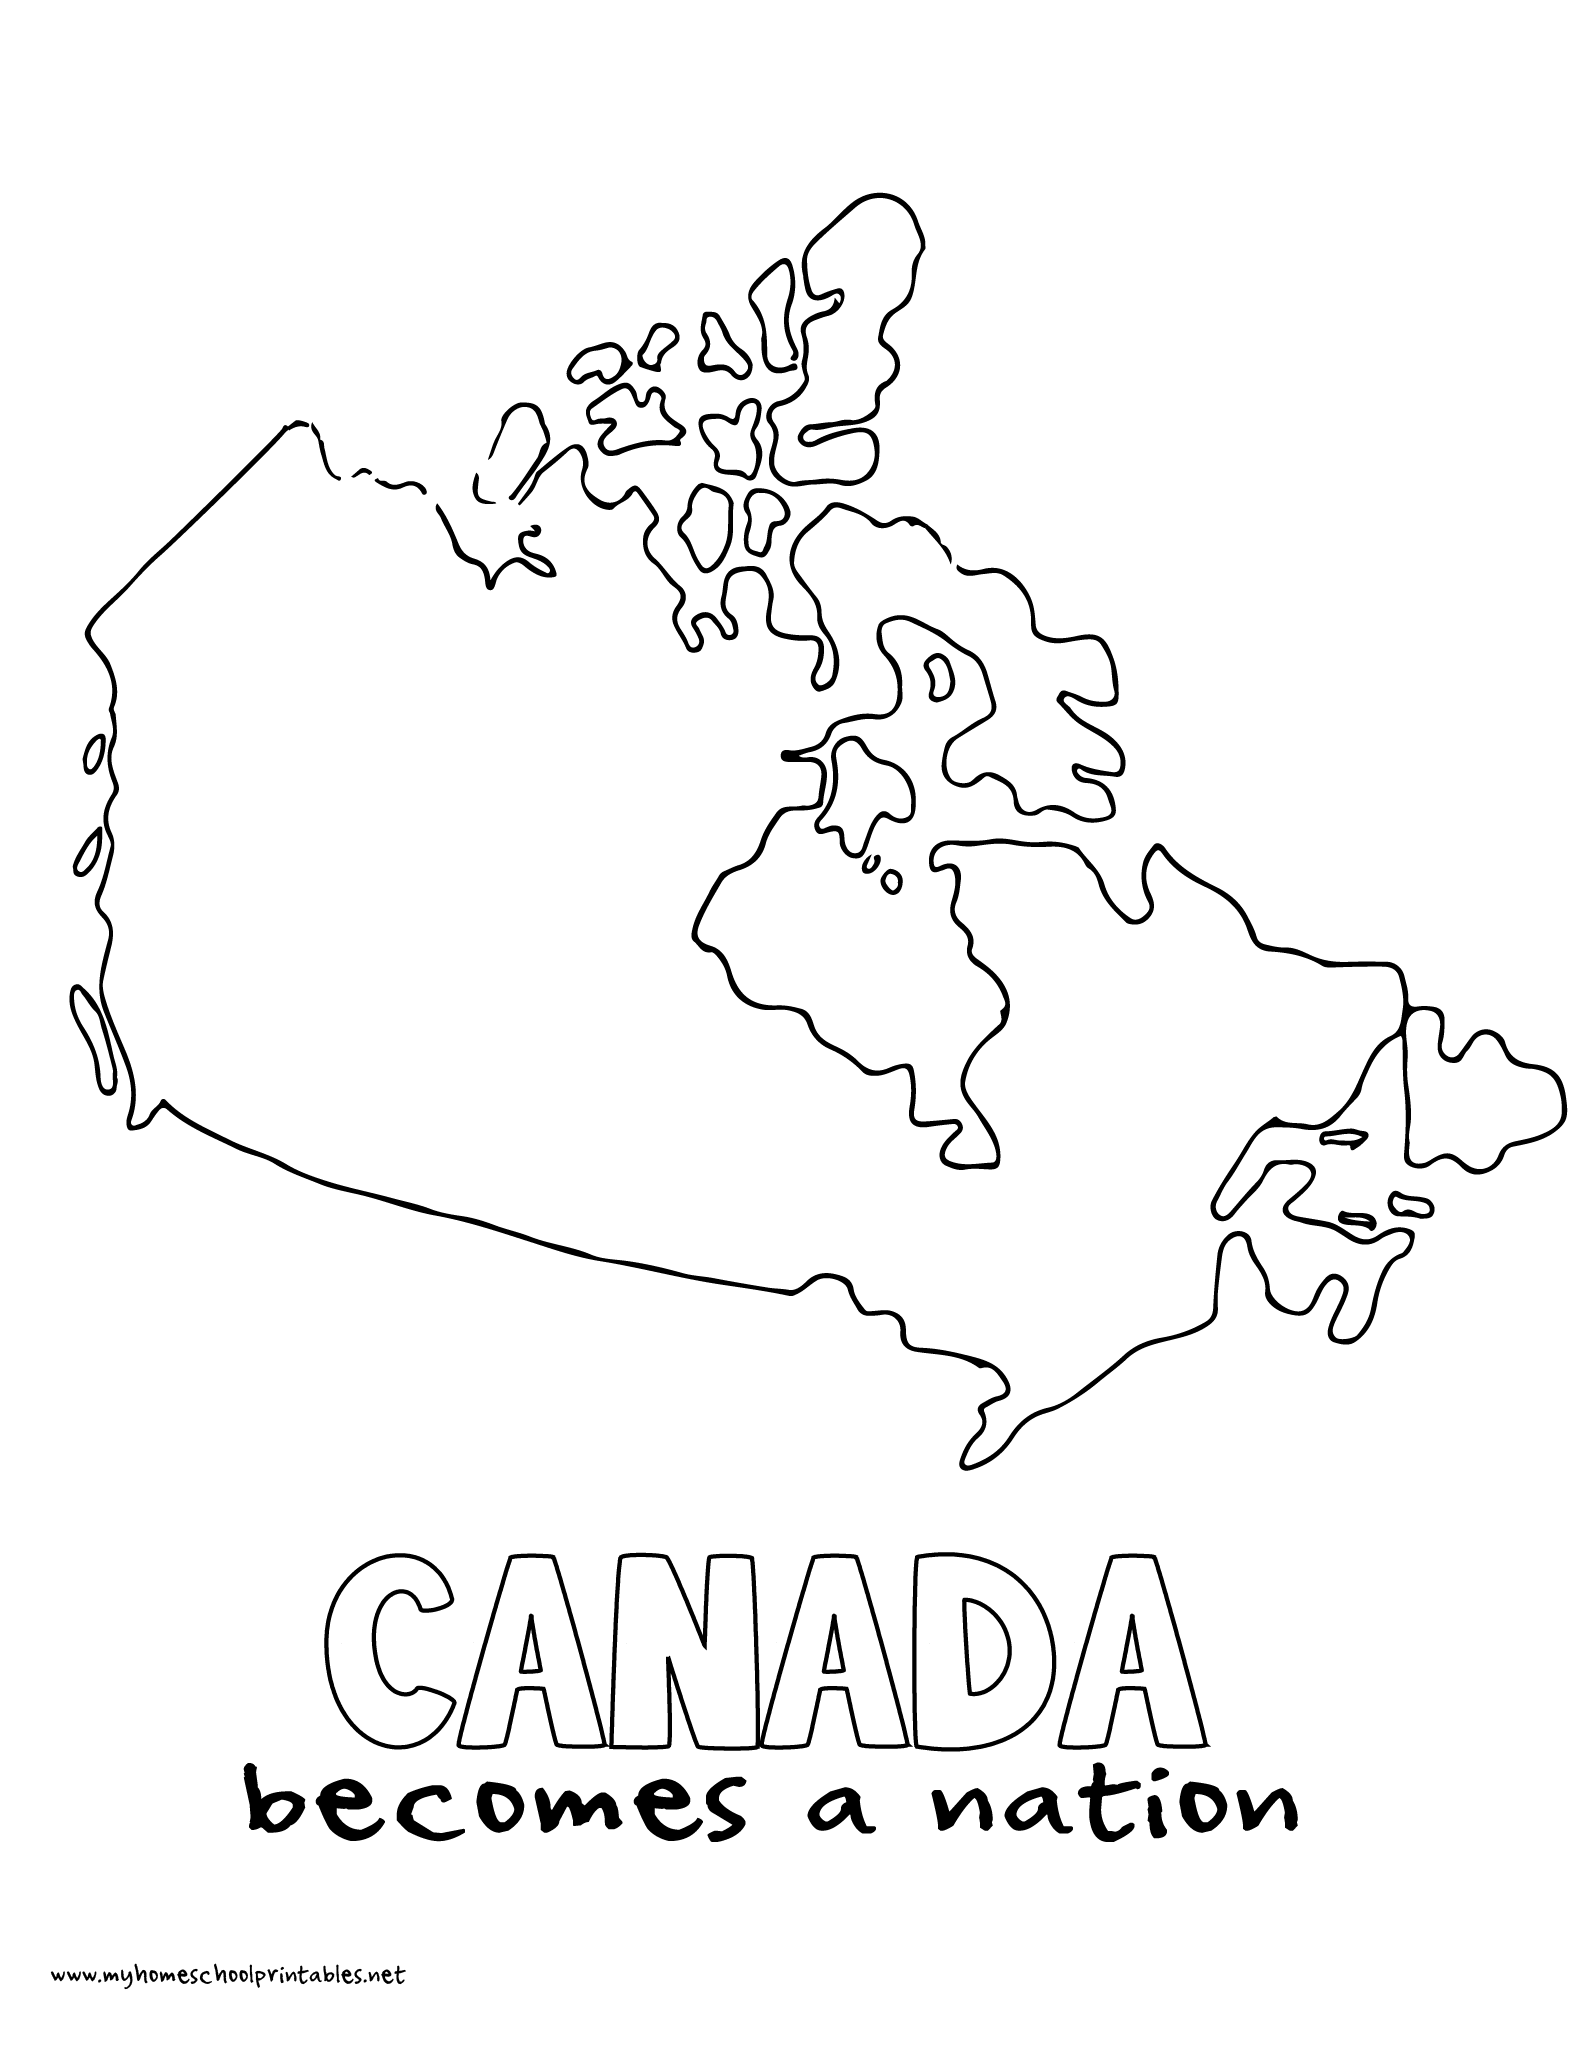 World History Coloring Pages Printables Canada Becomes a Nation